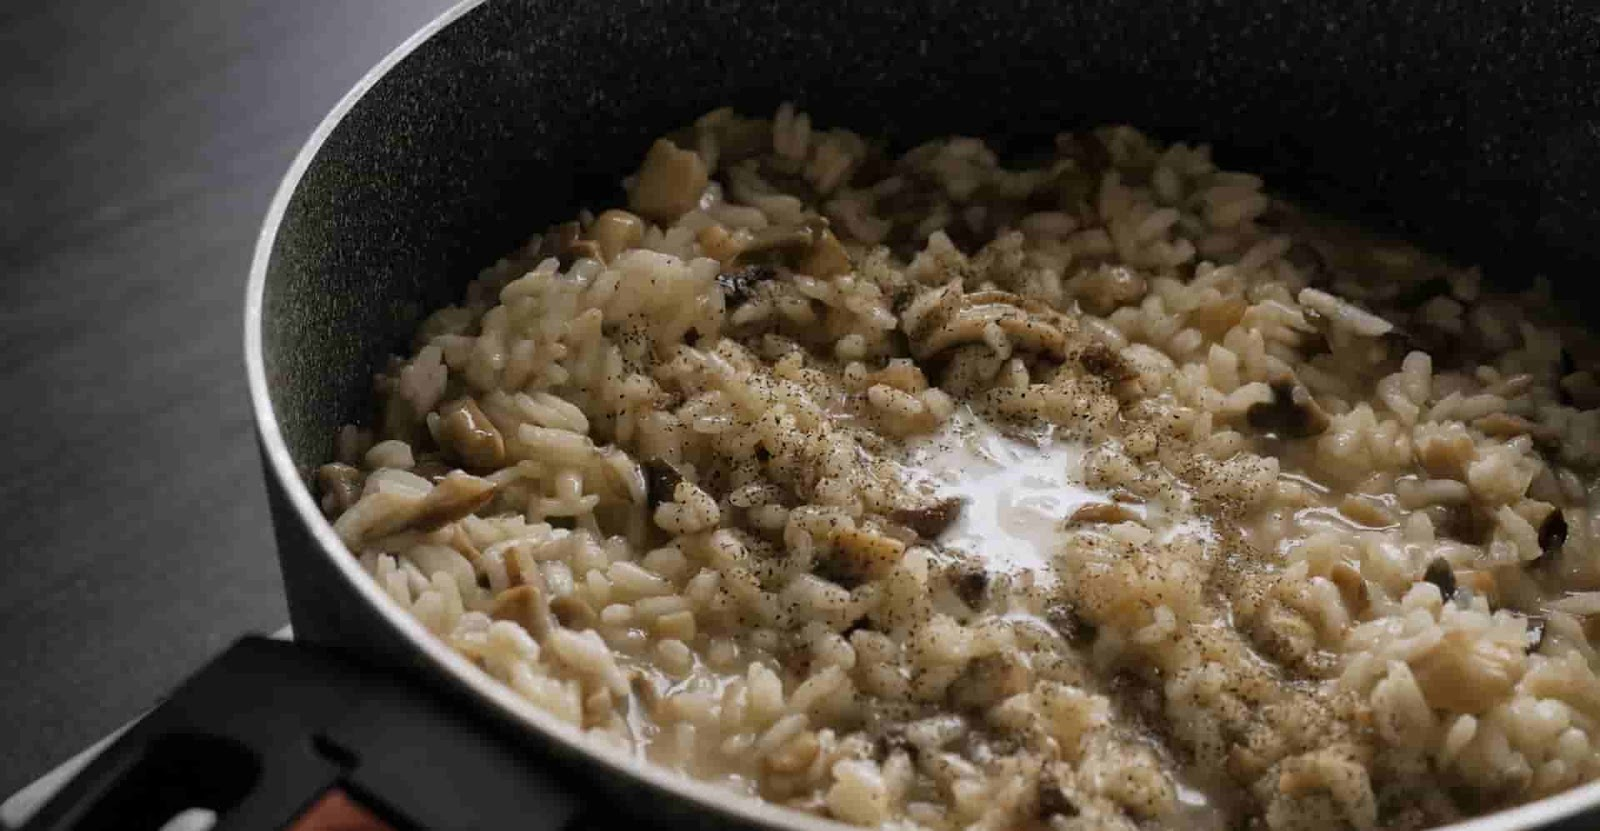 putting-ingredients-in-risotto